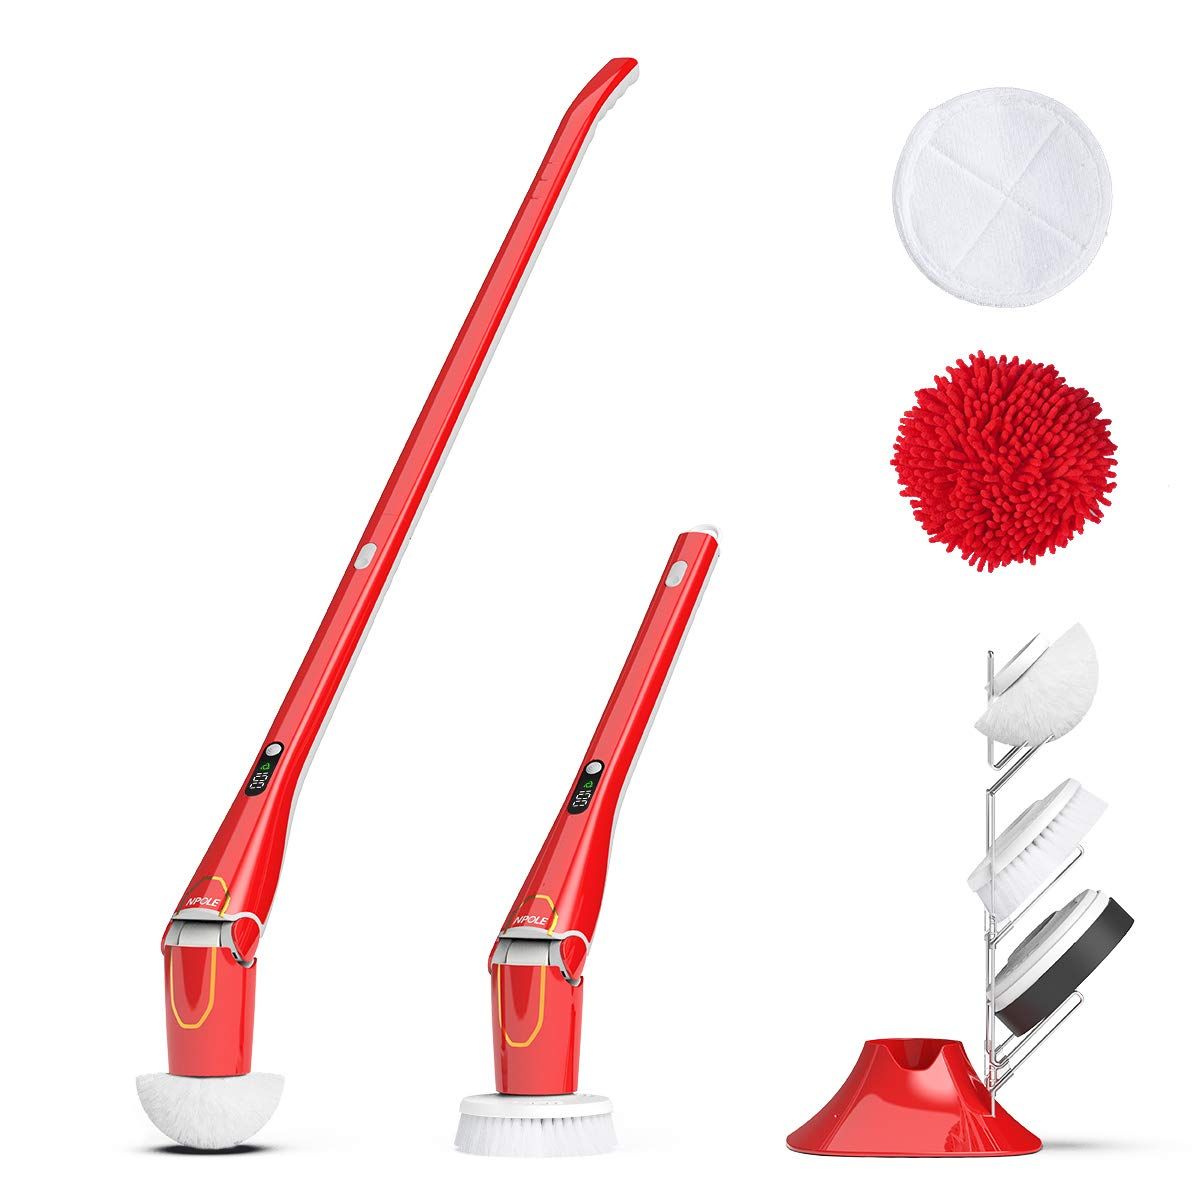 NPOLE Spin Scrubber IPX 7 Waterproof High Speed at 280r/m Power Cordless Spin Mop for Bathroom,Car,Kitchen,Floor,Wall,Tub Cleaner (Spin Scrubber)-RED